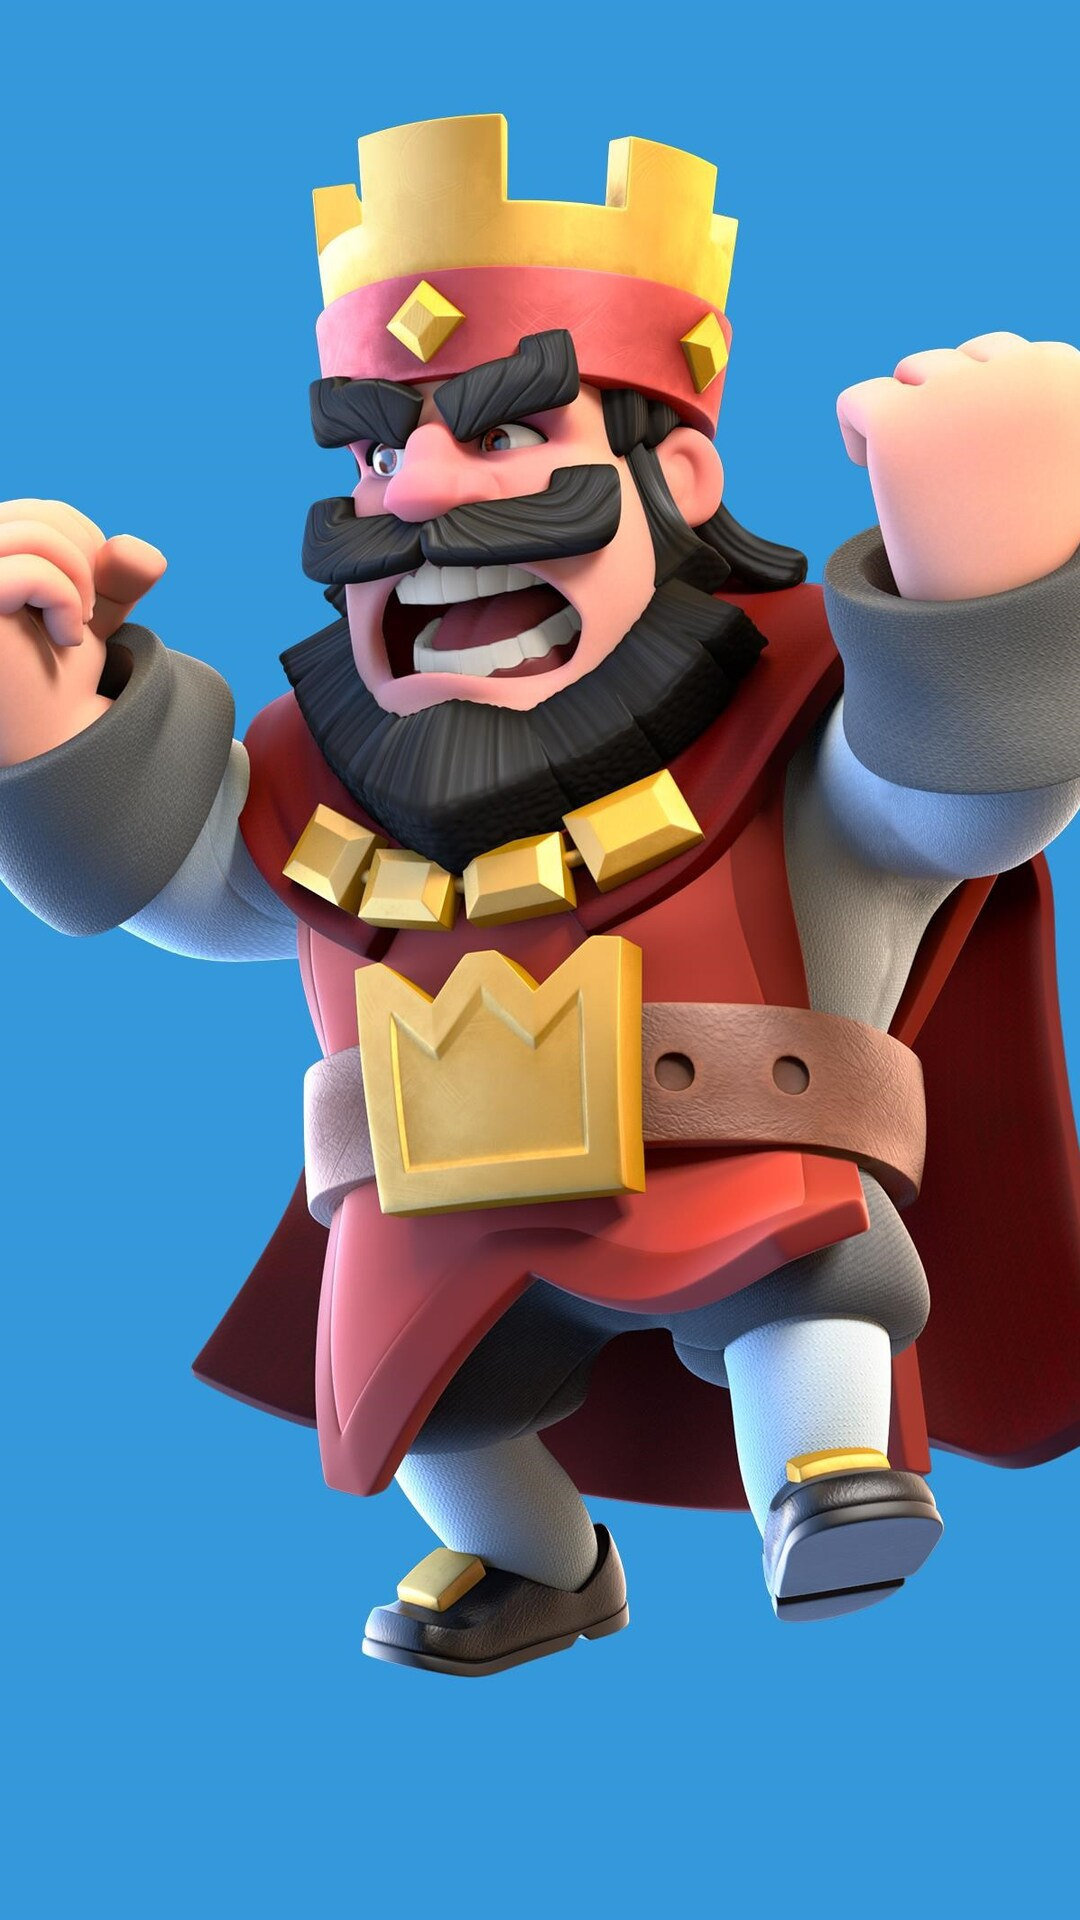 1080x1920 clash royale red king iphone 7 6s 6 plus pixel xl one plus 3 3t 5 hd 4k wallpapers - Clash royale 2560x1440 ...